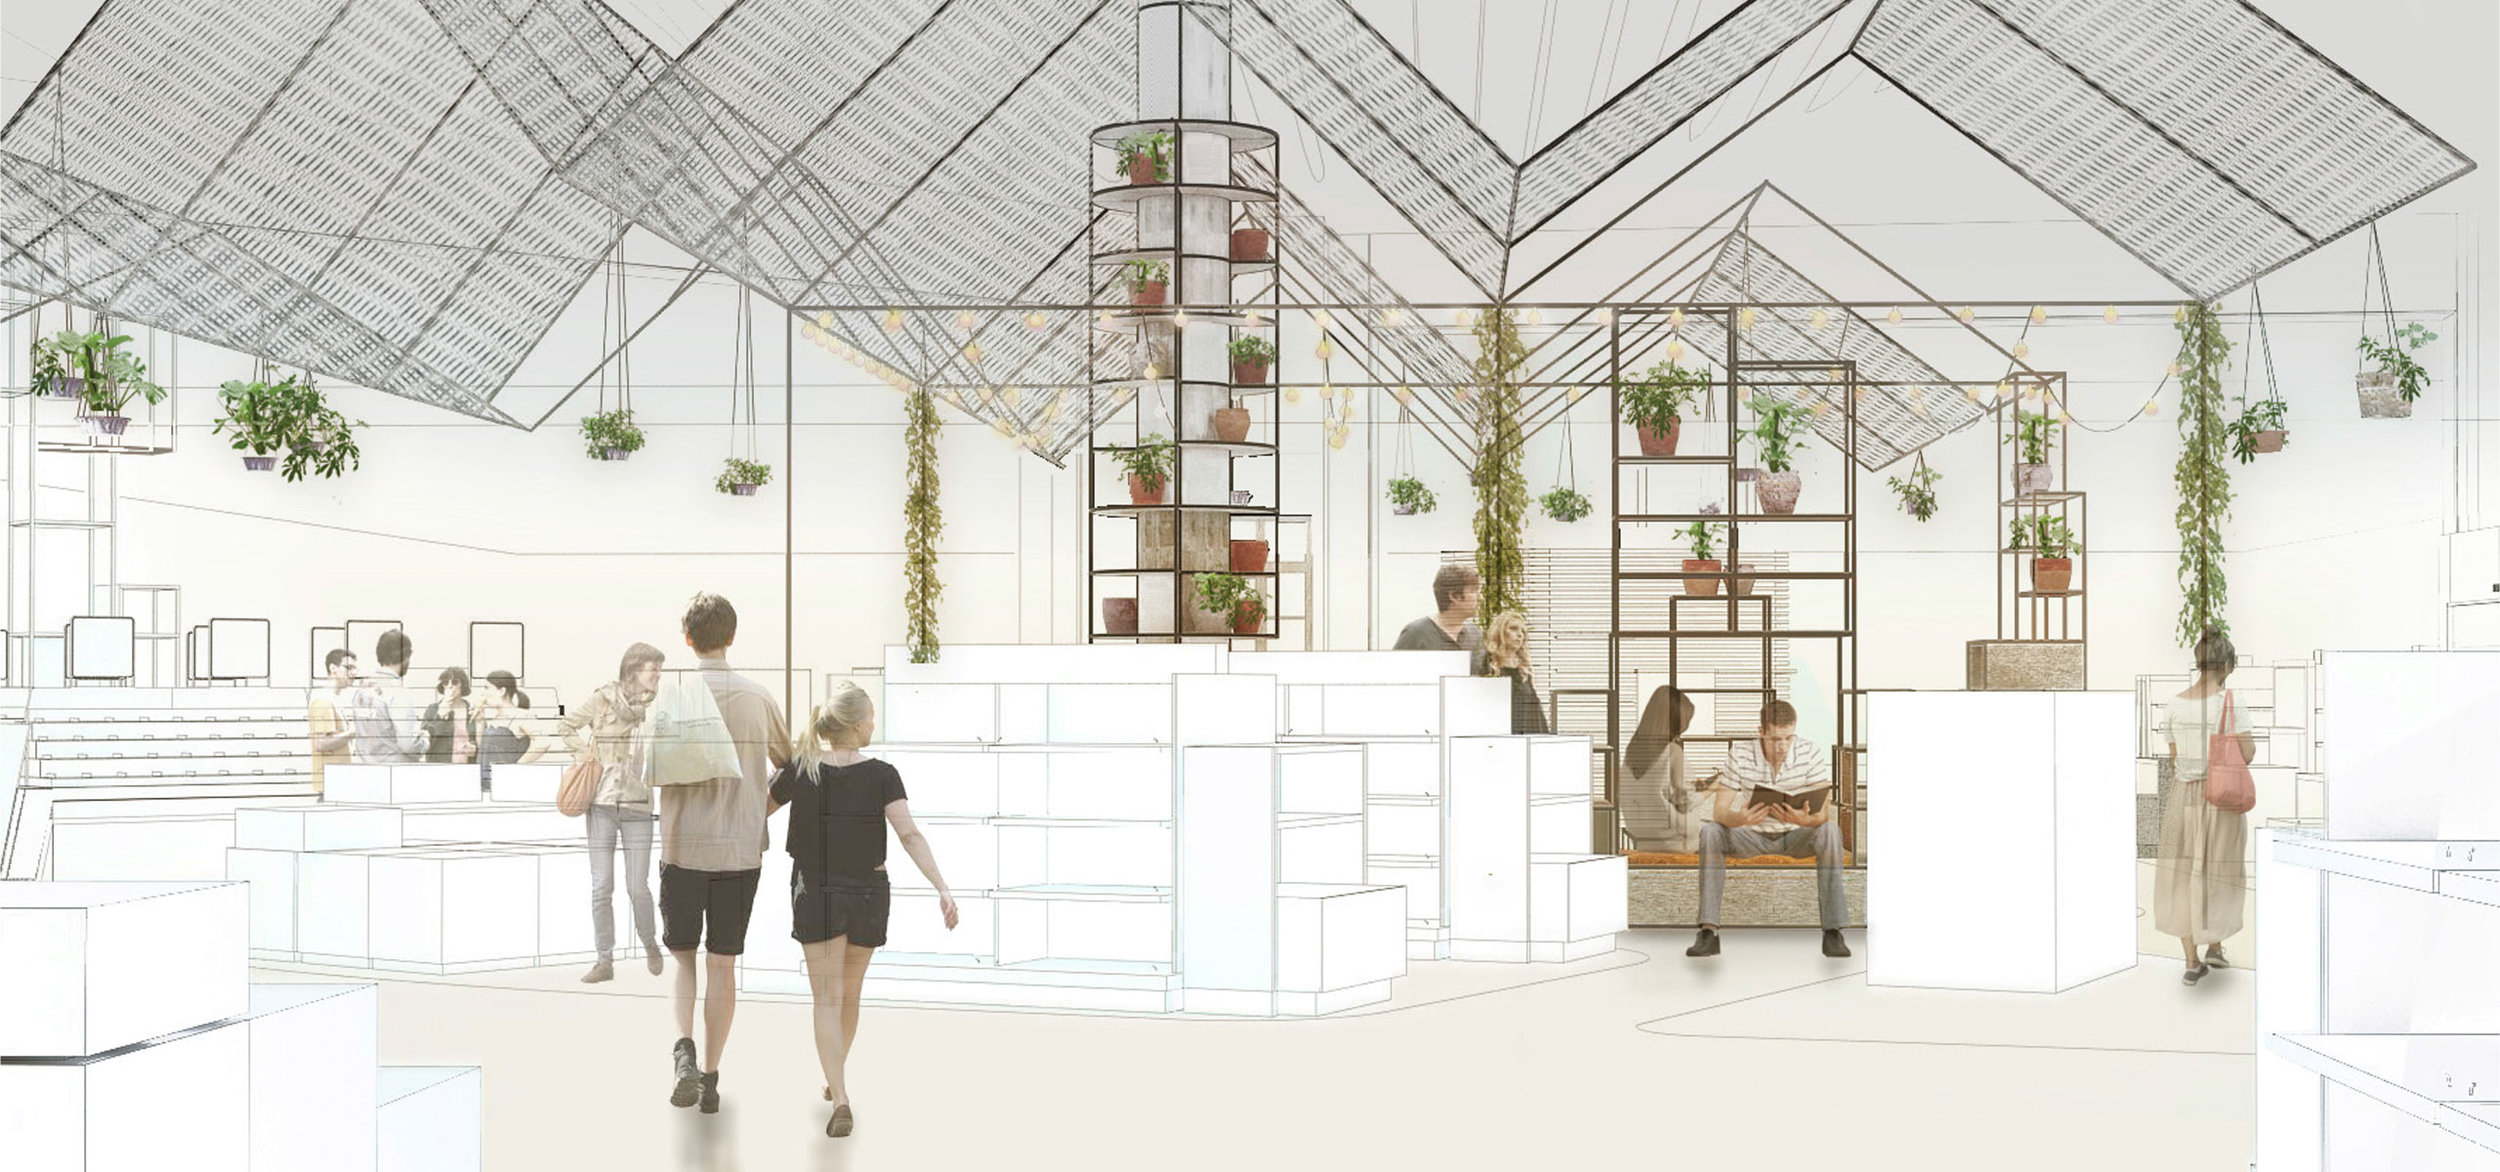 Graphic design of the re-think zone visualized like an open courtyard at Copenhagen Airport